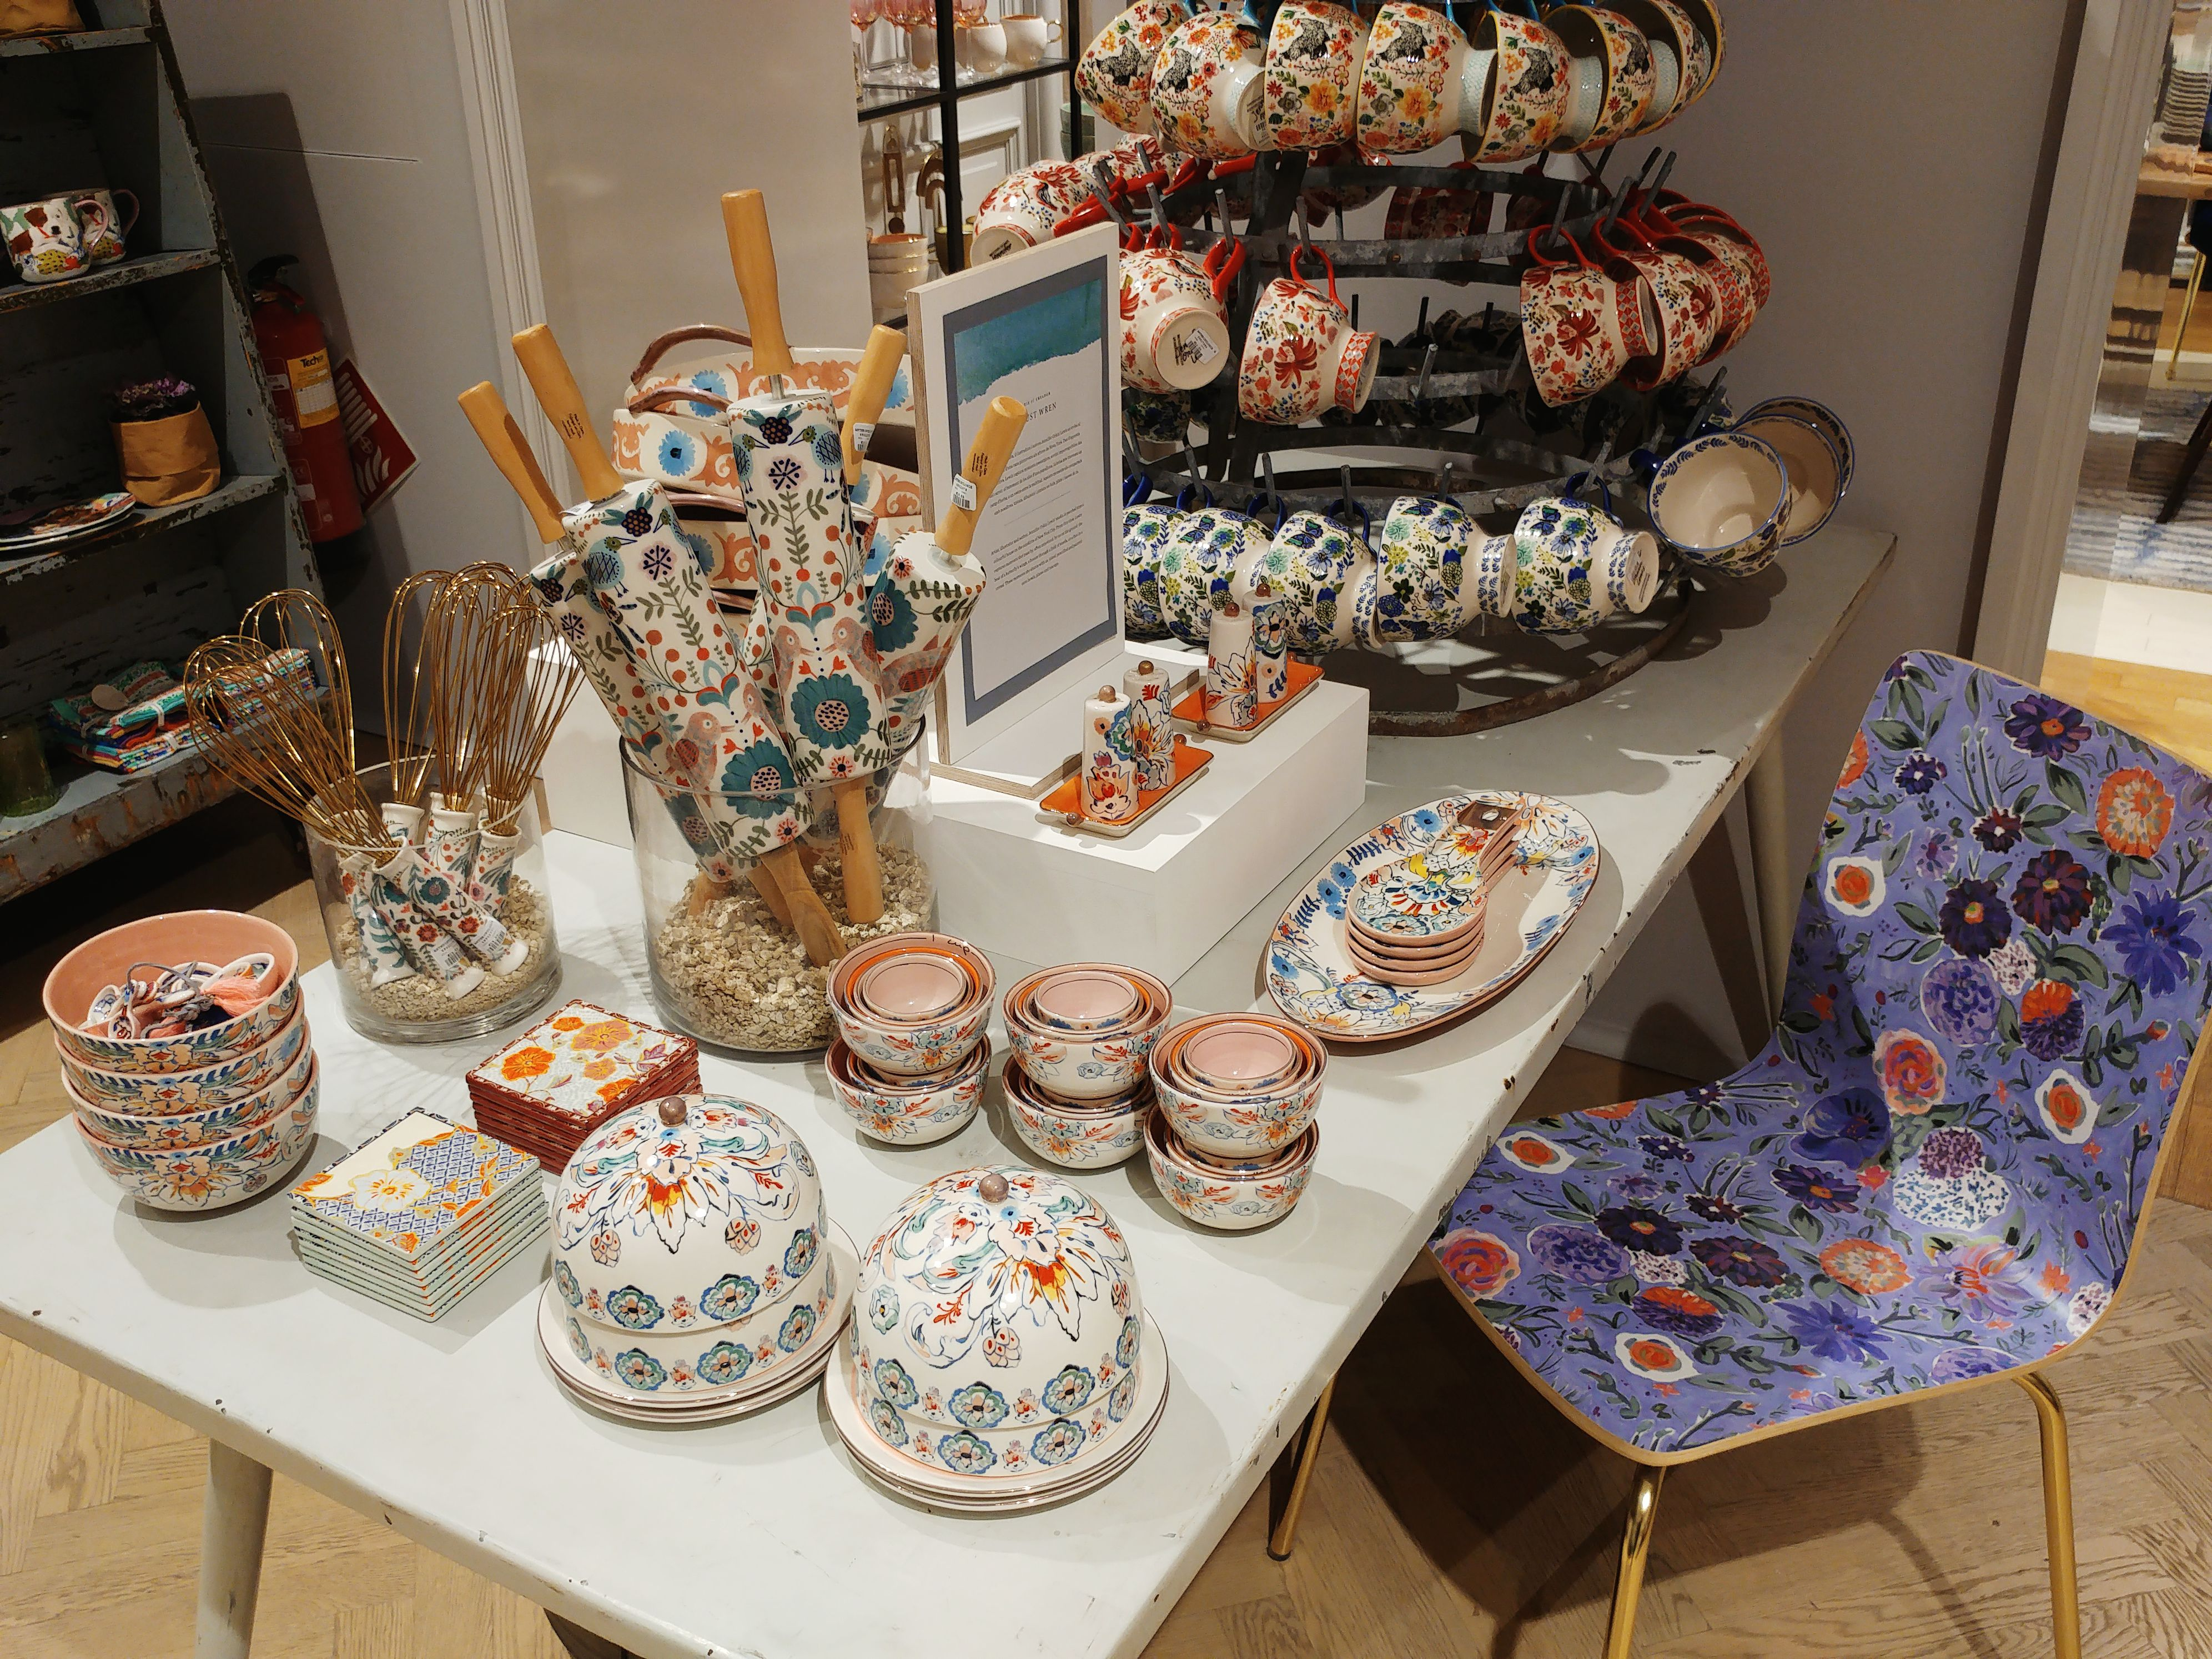 Anthropologie shop in Barcelona - eclectic dishware and utensils